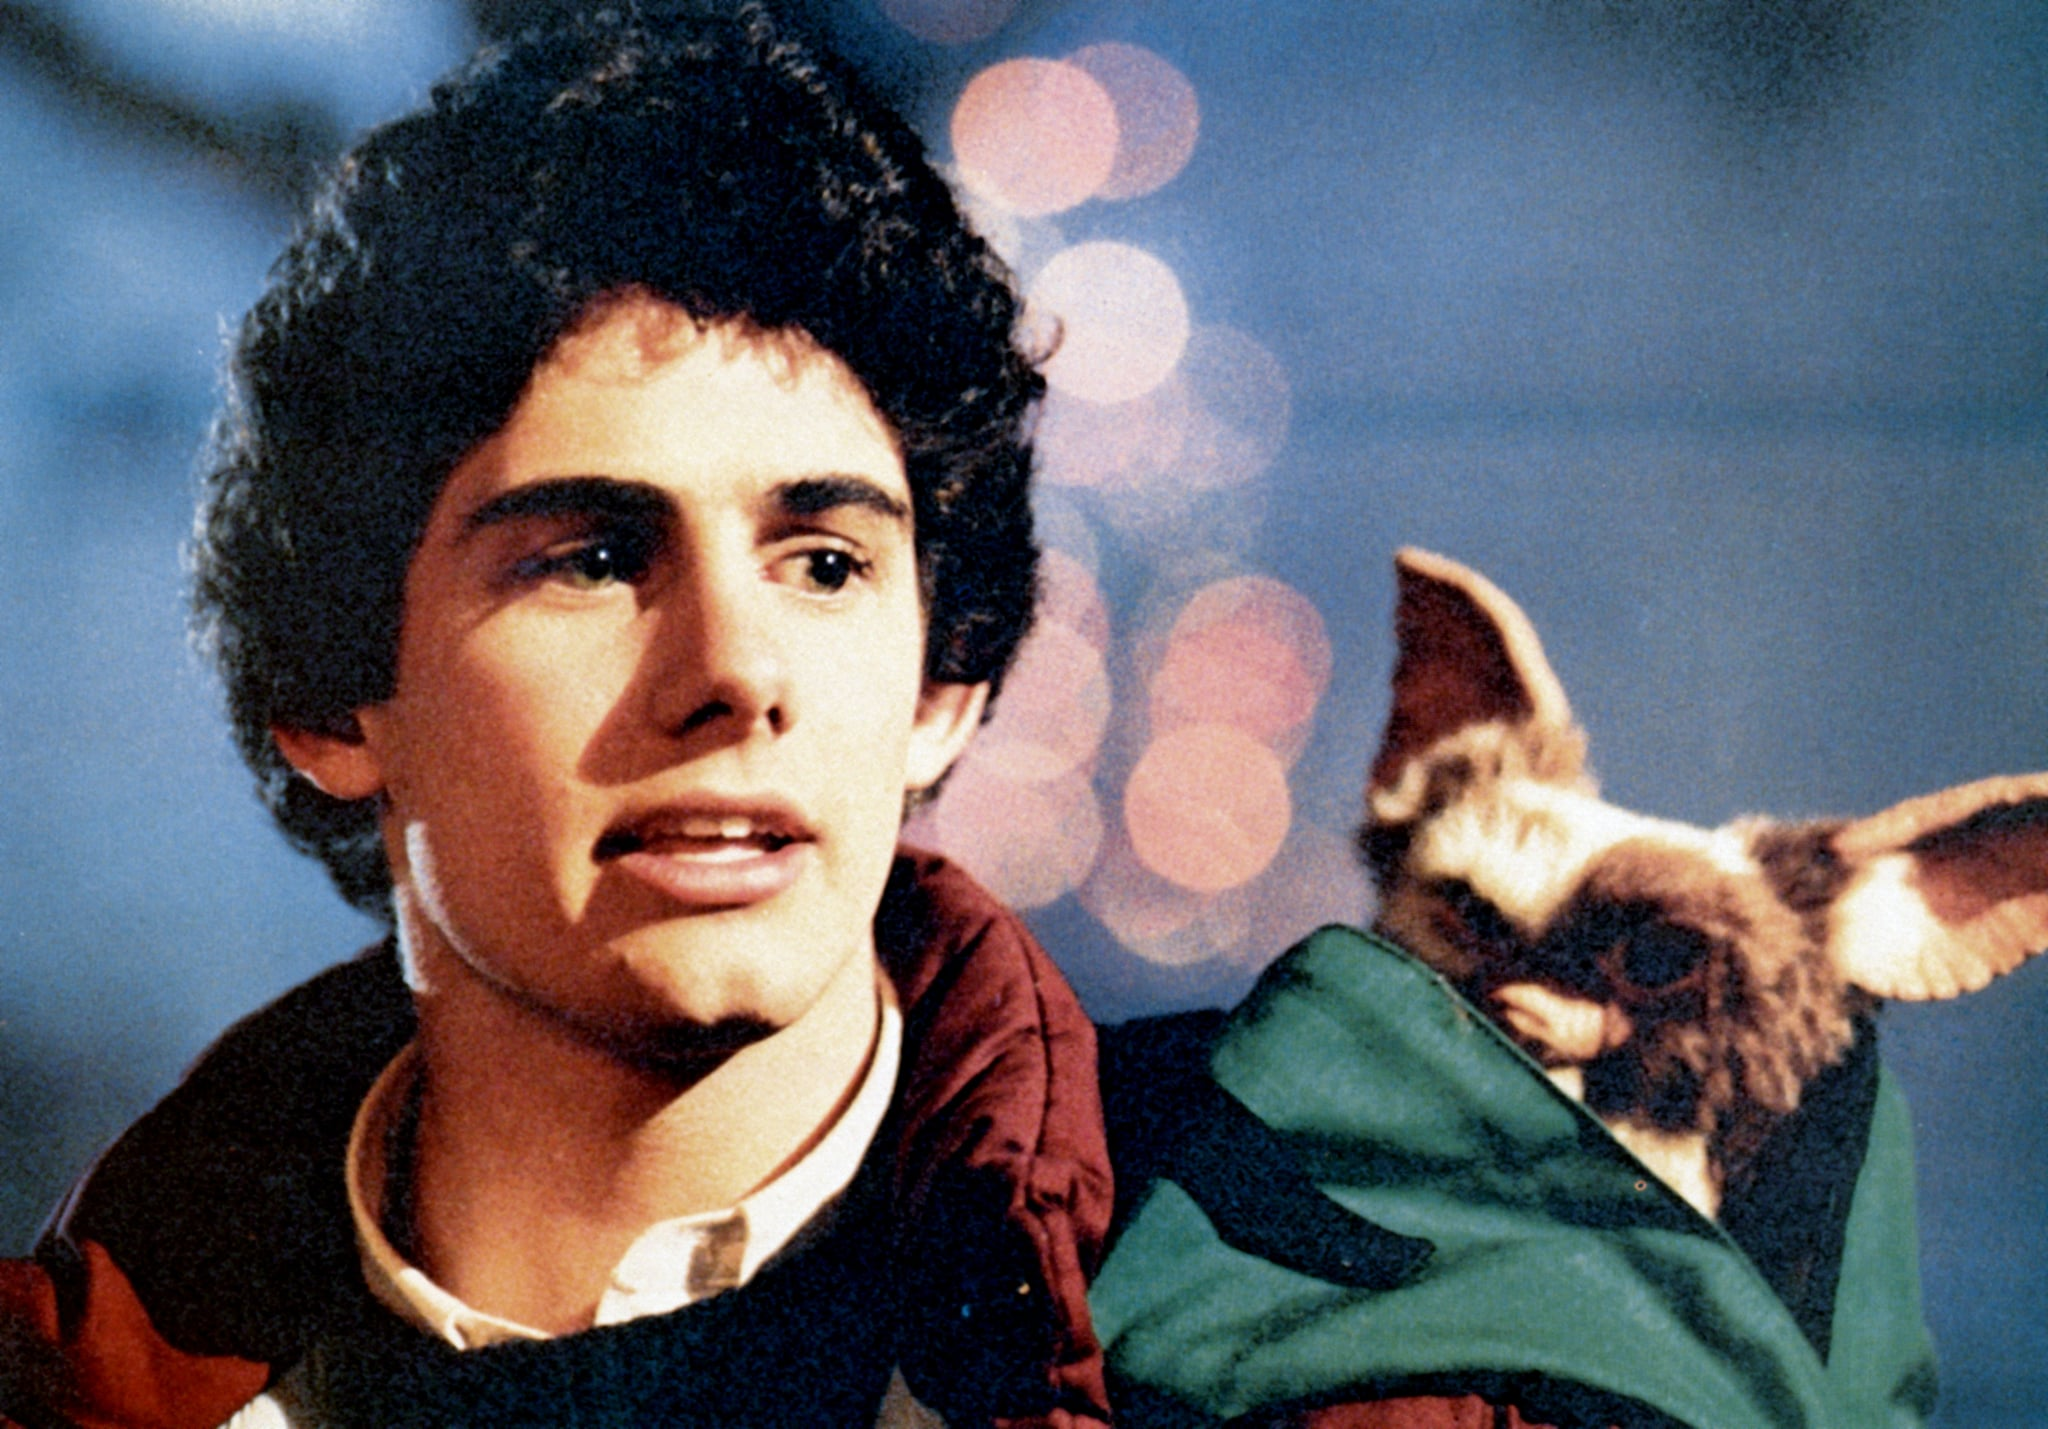 GREMLINS, Zach Galligan, Gizmo, 1984, (c)Warner Bros./courtesy Everett Collection